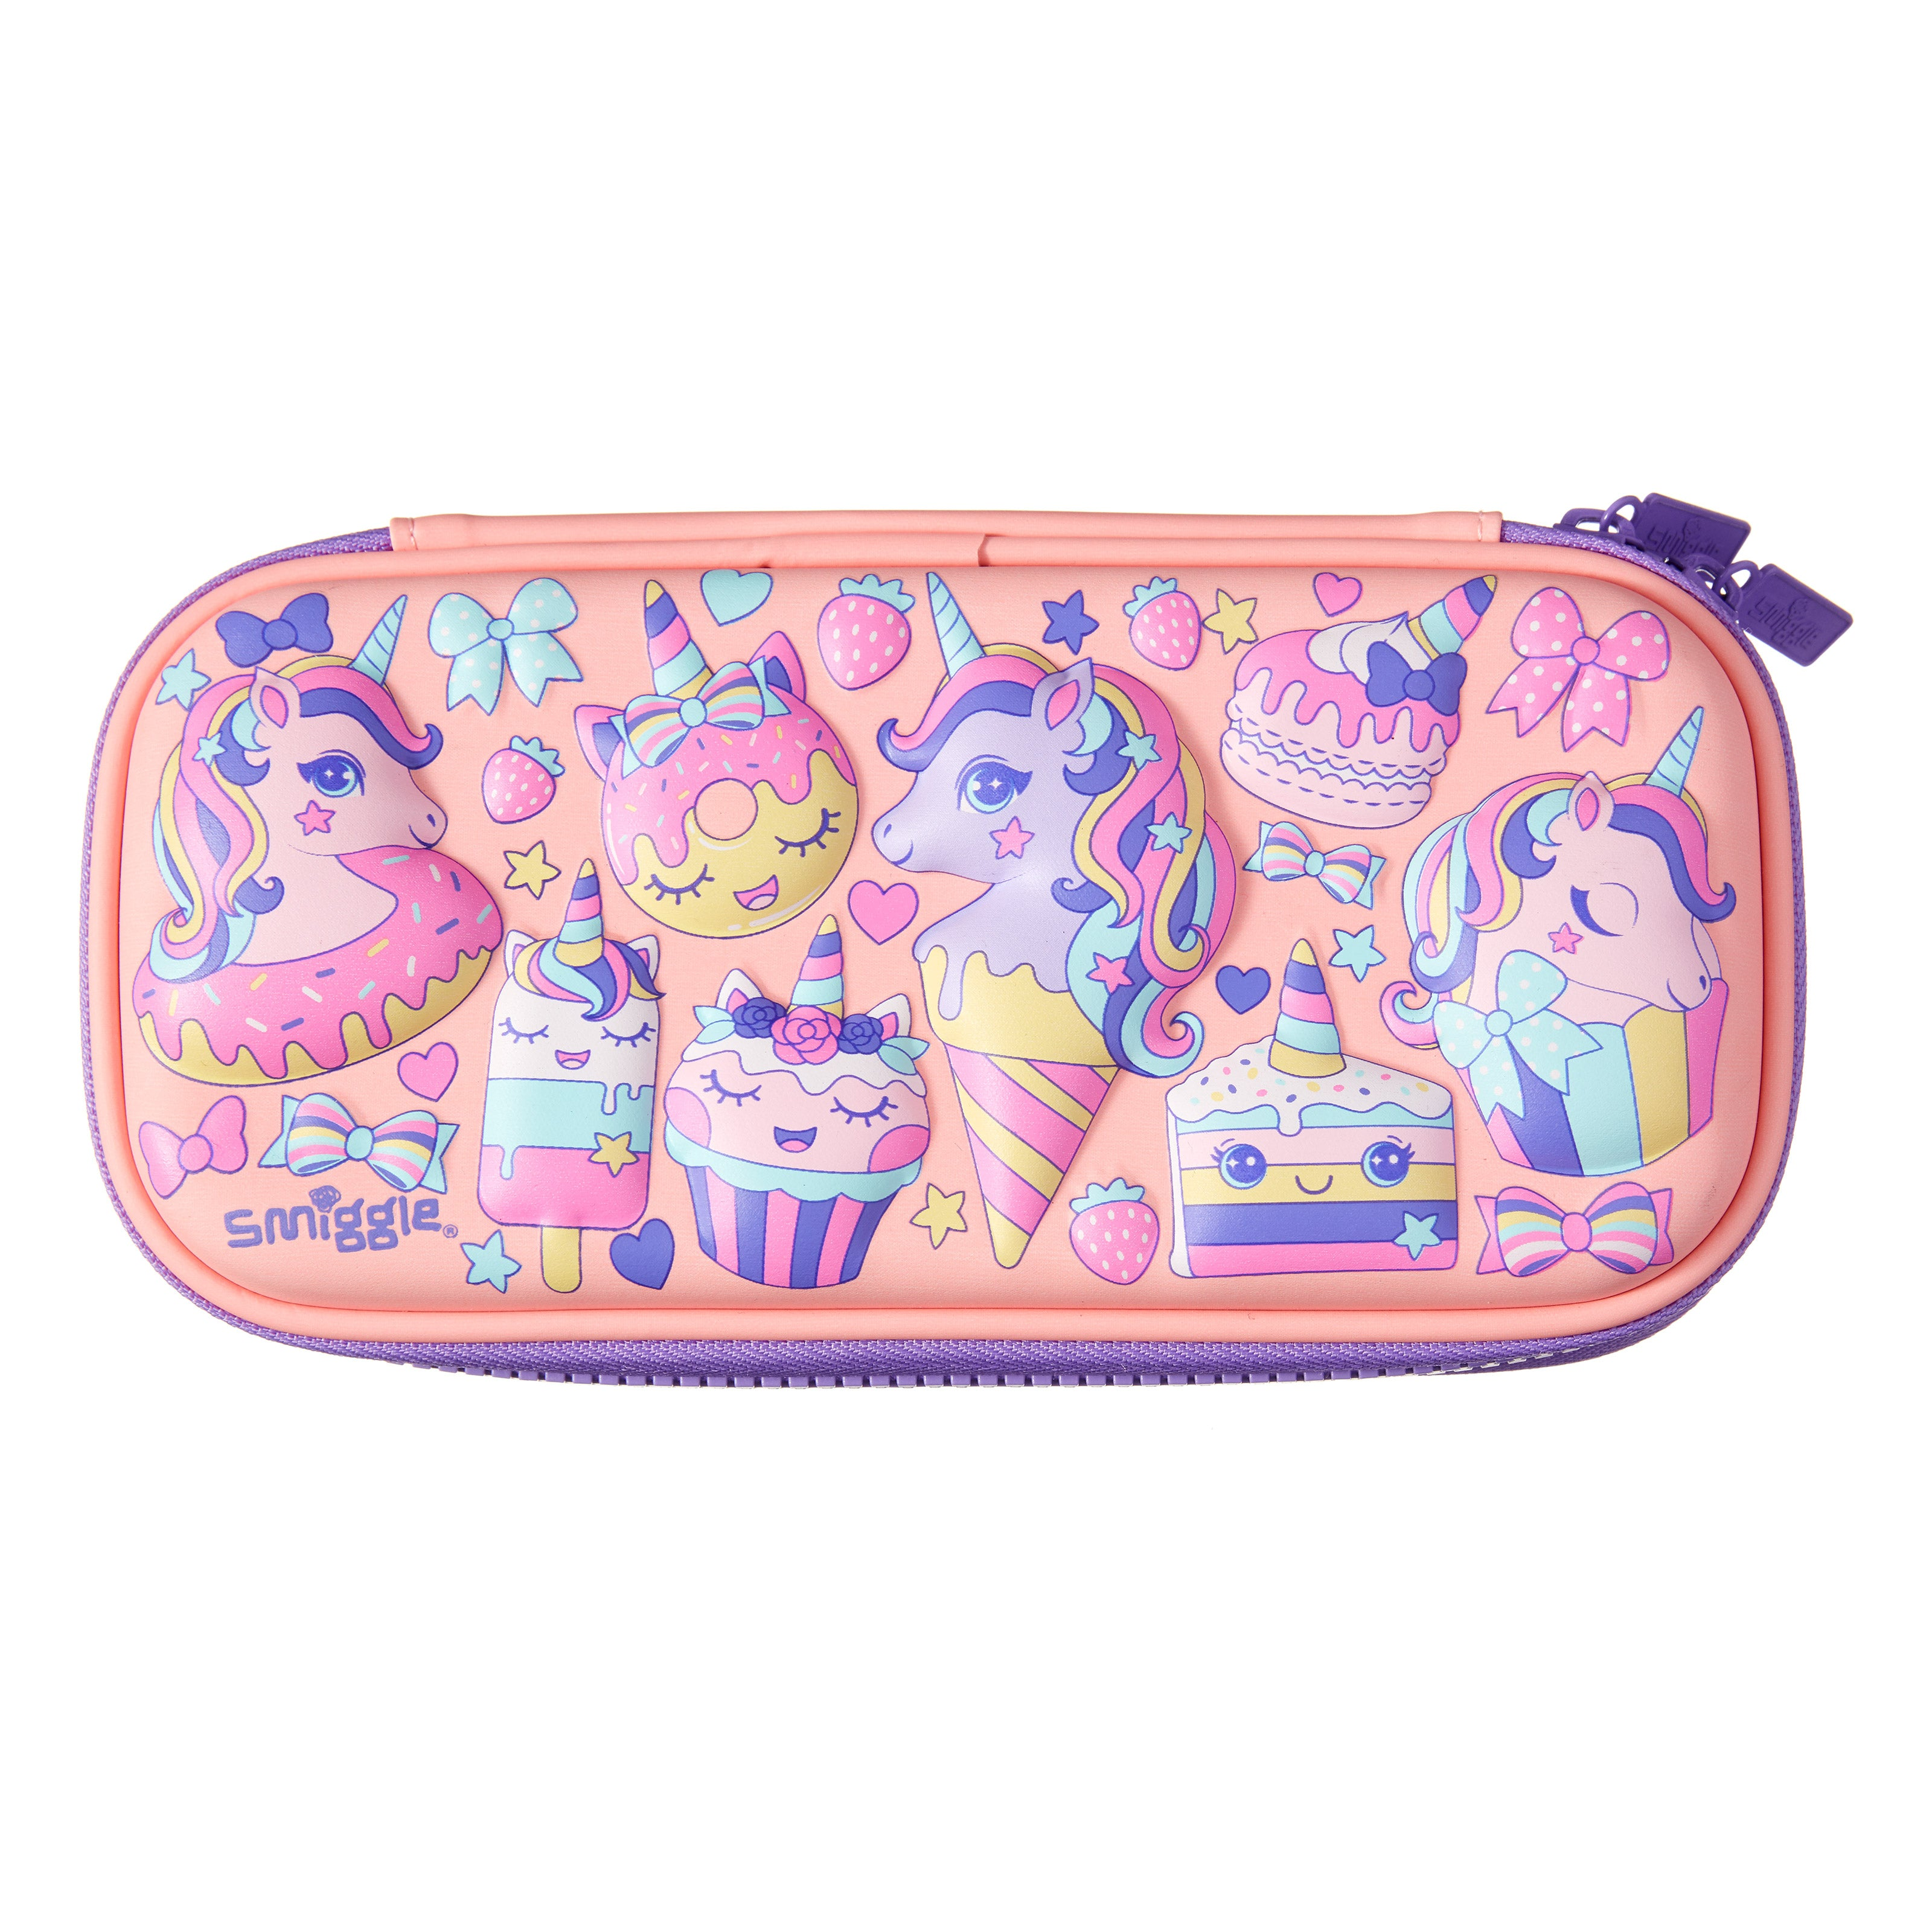 SMIGGLE - HIPPY SMALL HARDTOP PENCIL CASE CORAL